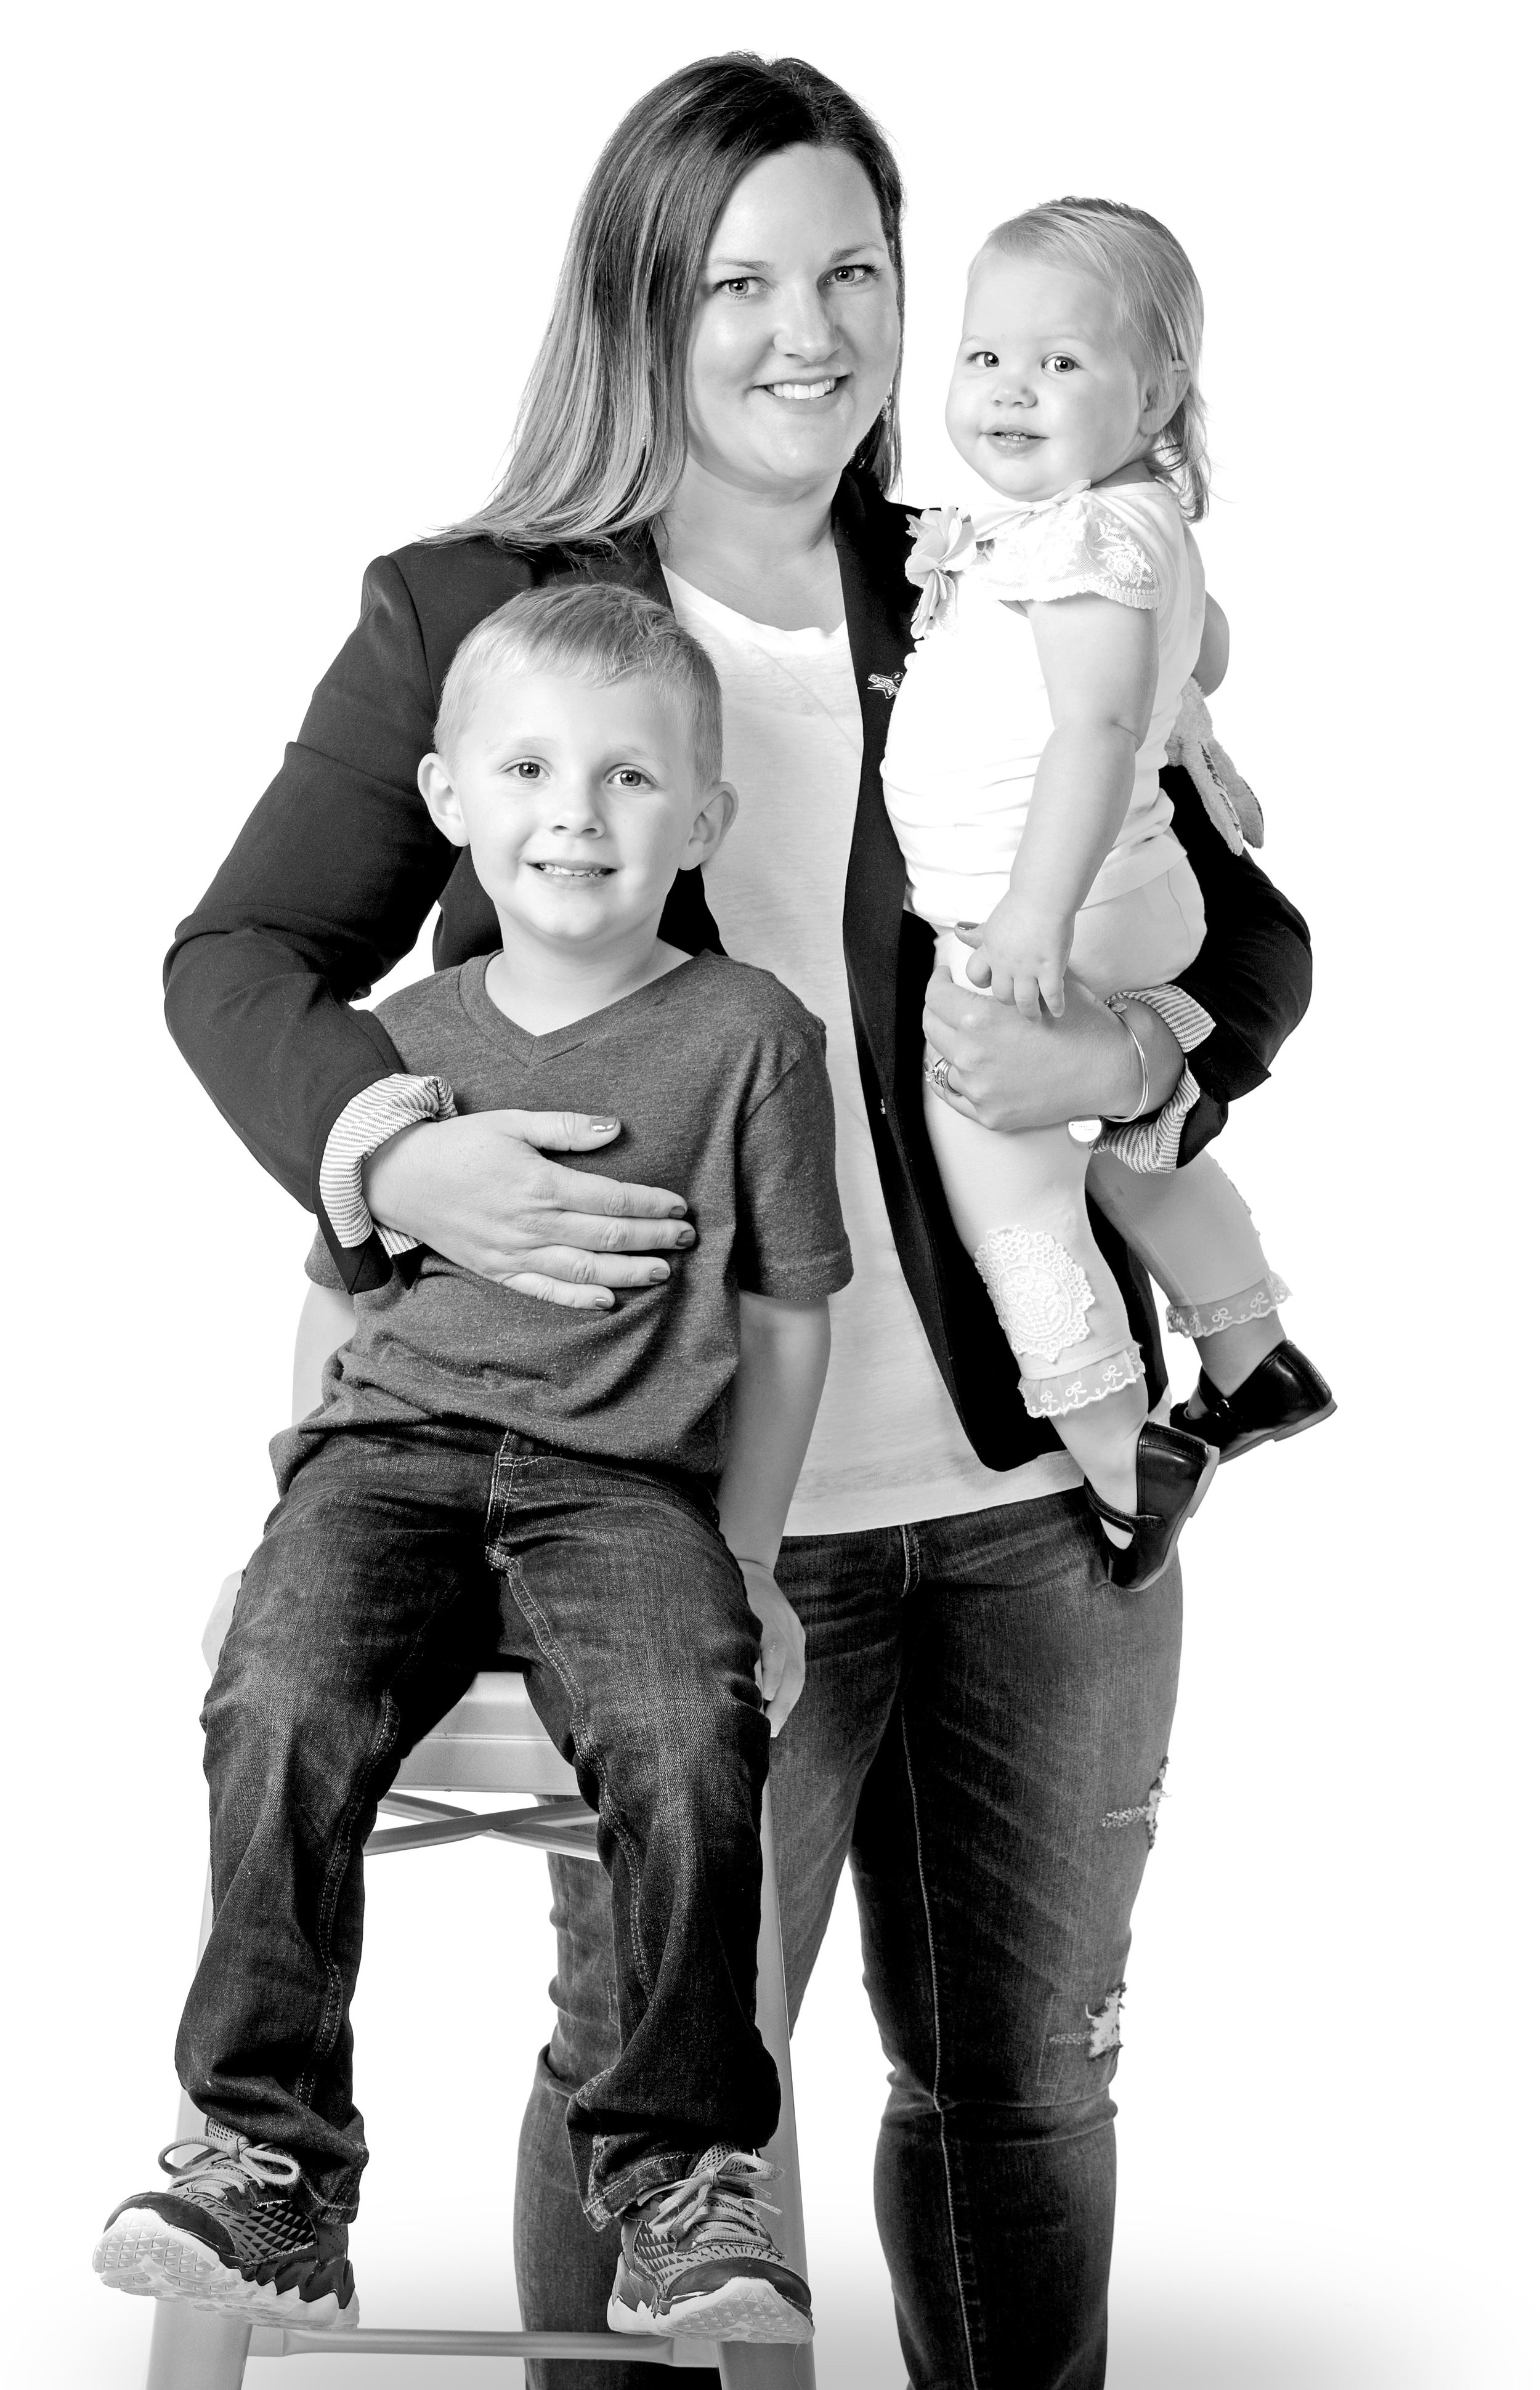 Andie with her children